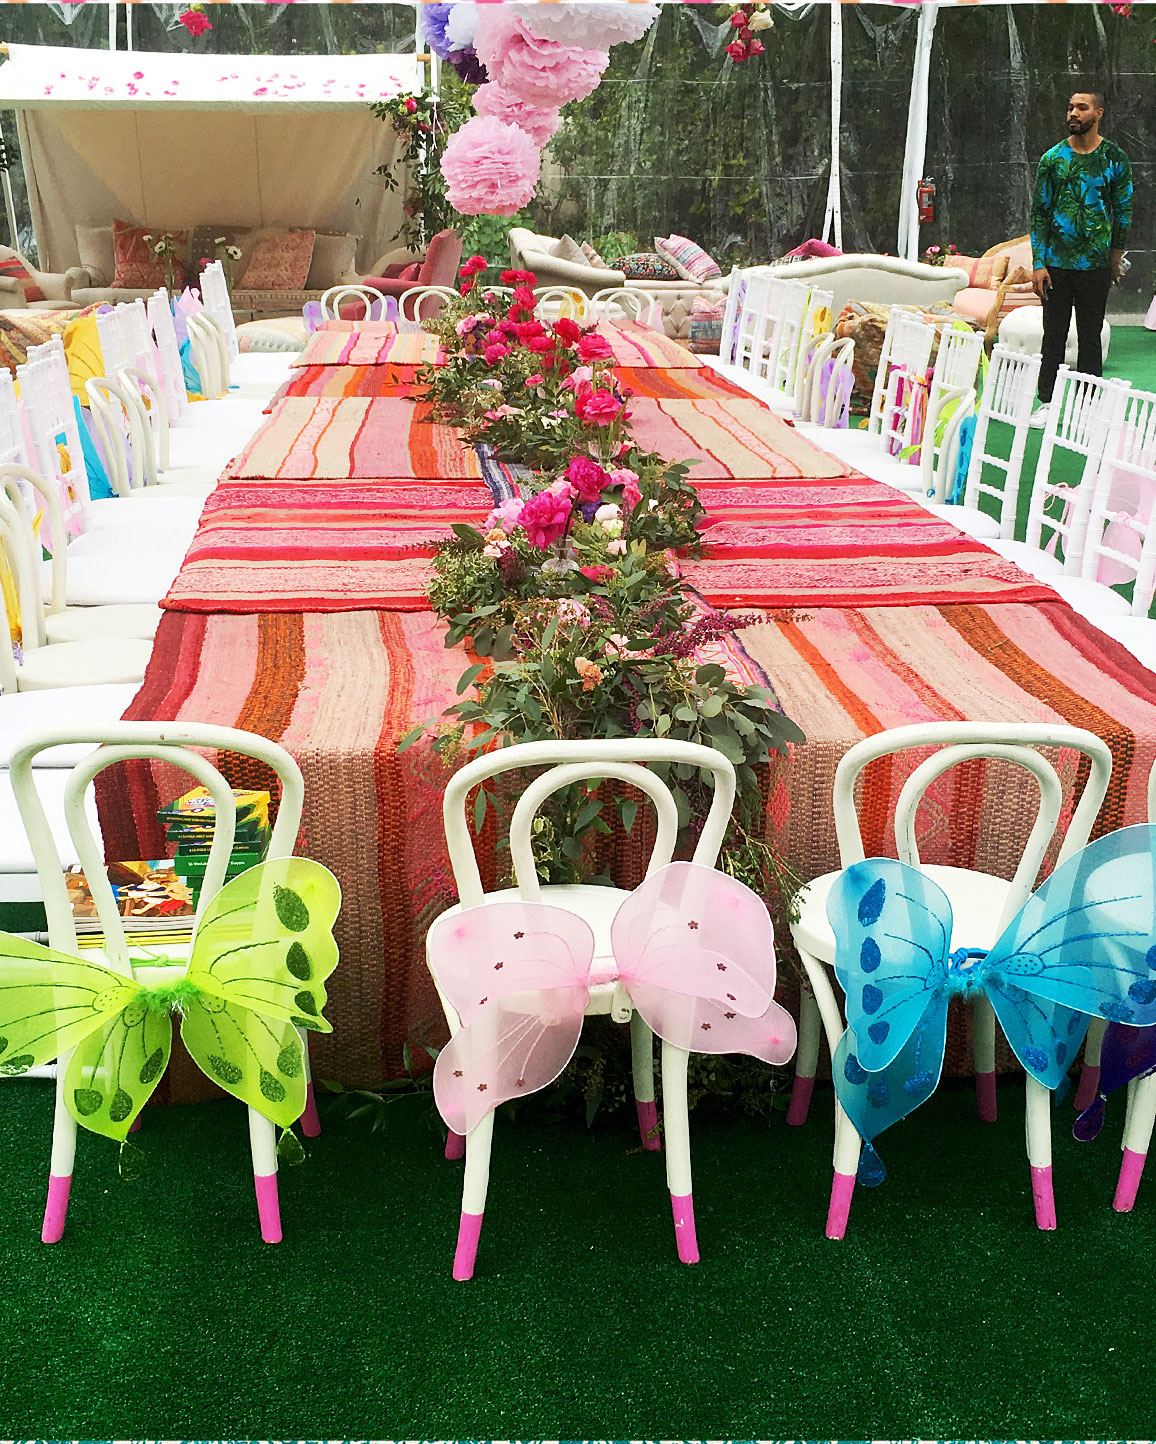 beyonce-blue-ivy-birthday-bridal-shower-inspo-table-setting-0416.jpg